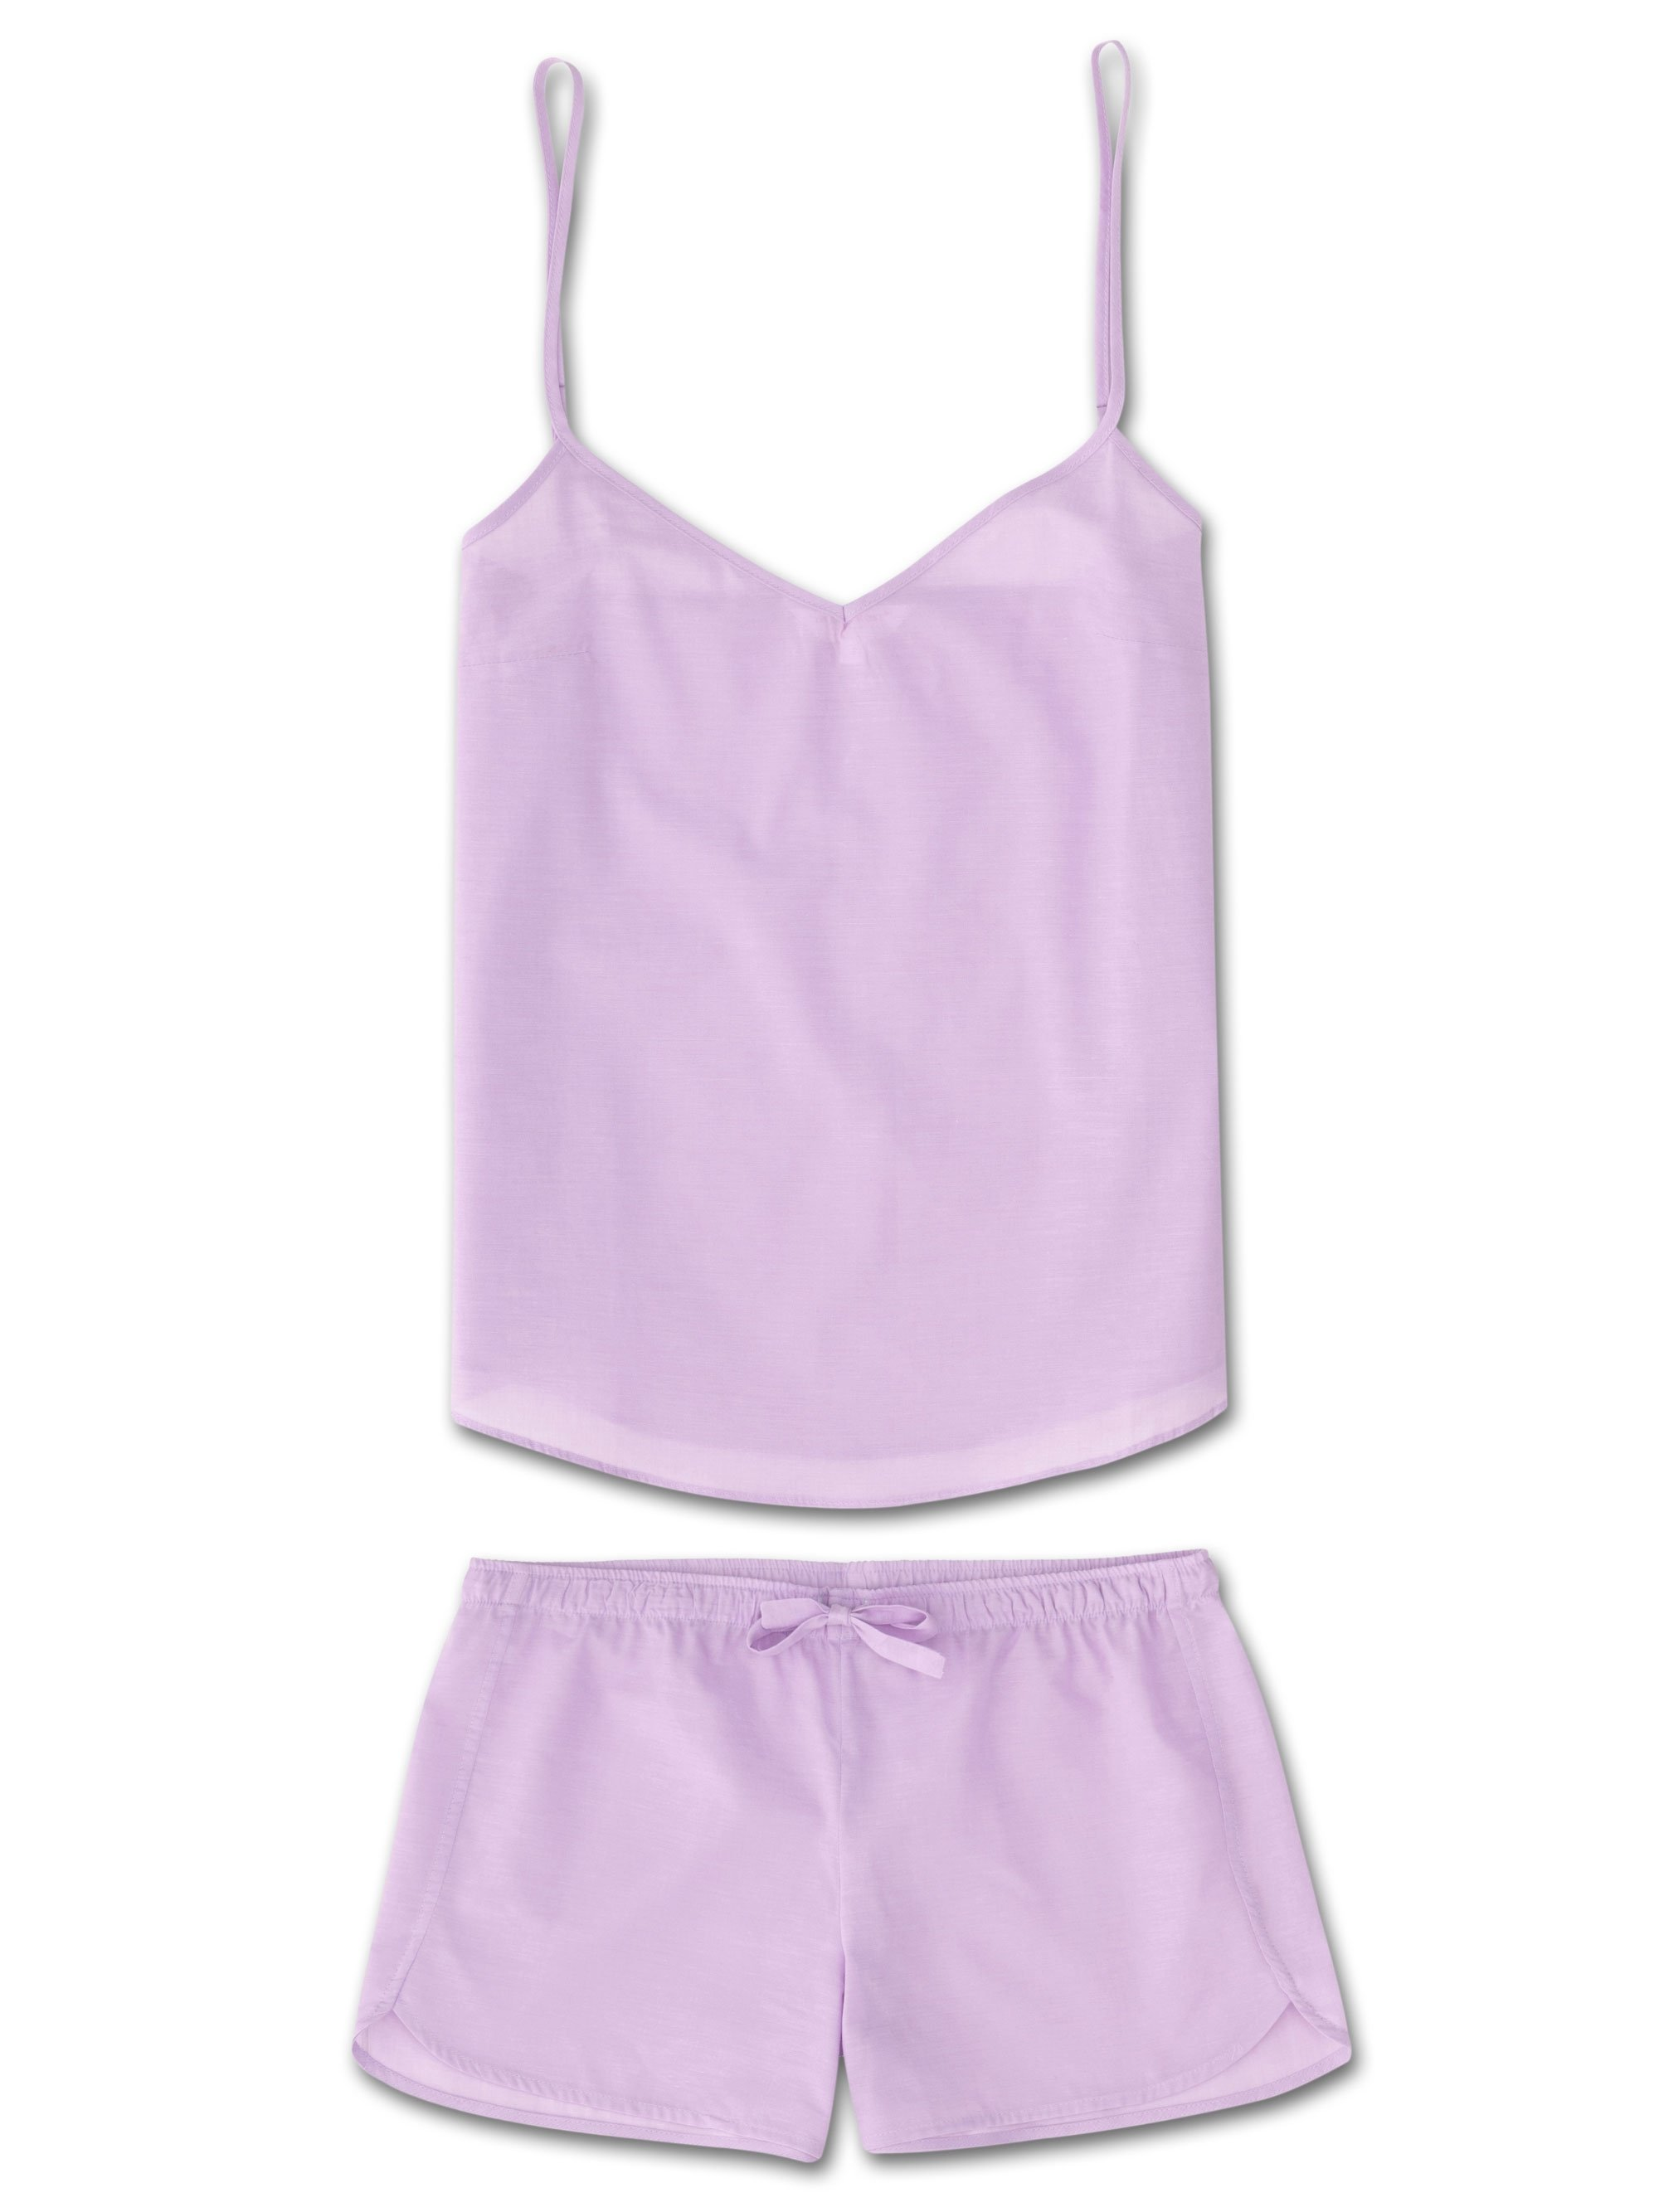 Women's Cami Short Pyjama Set Amalfi Cotton Batiste Lilac